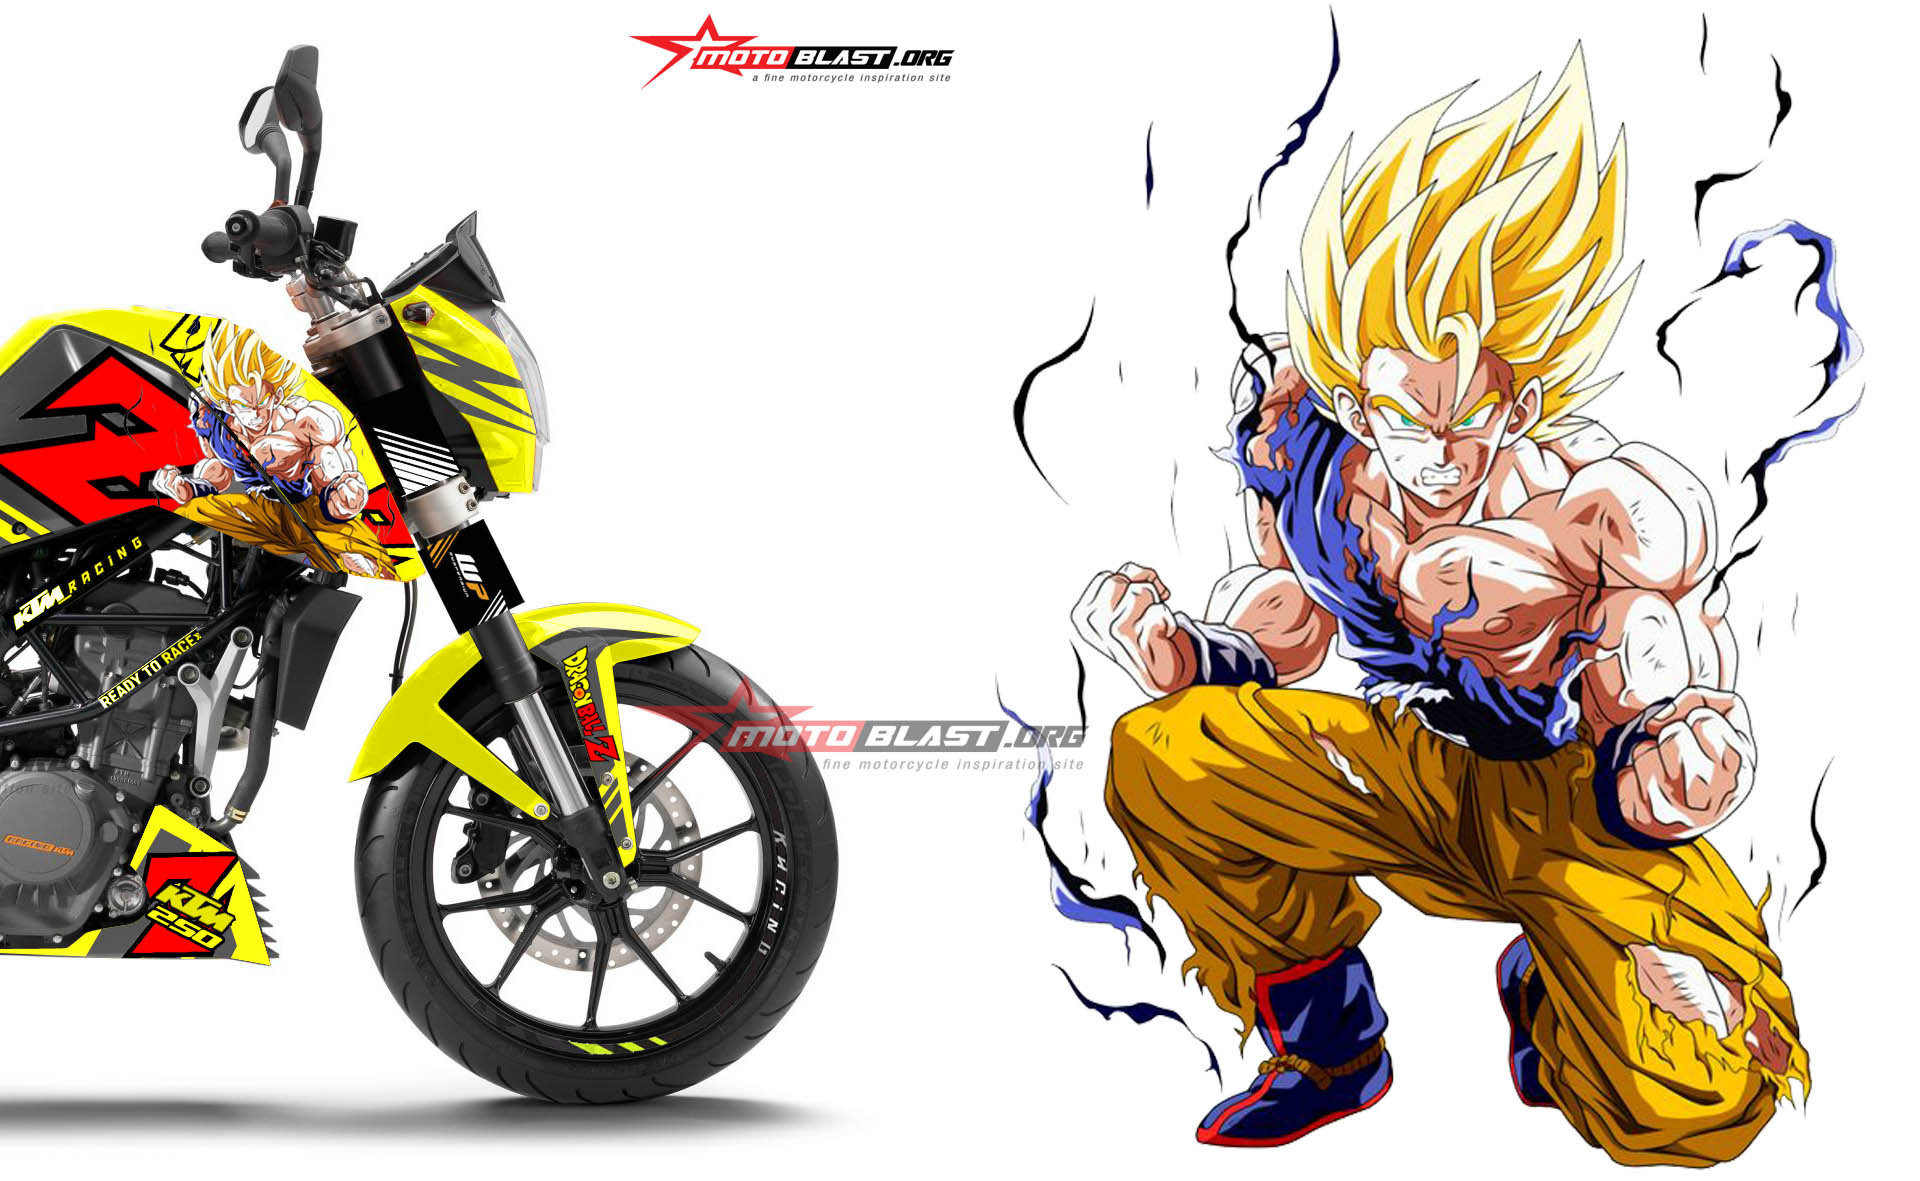 ktm-duke-200-250-390-dragon-ball2